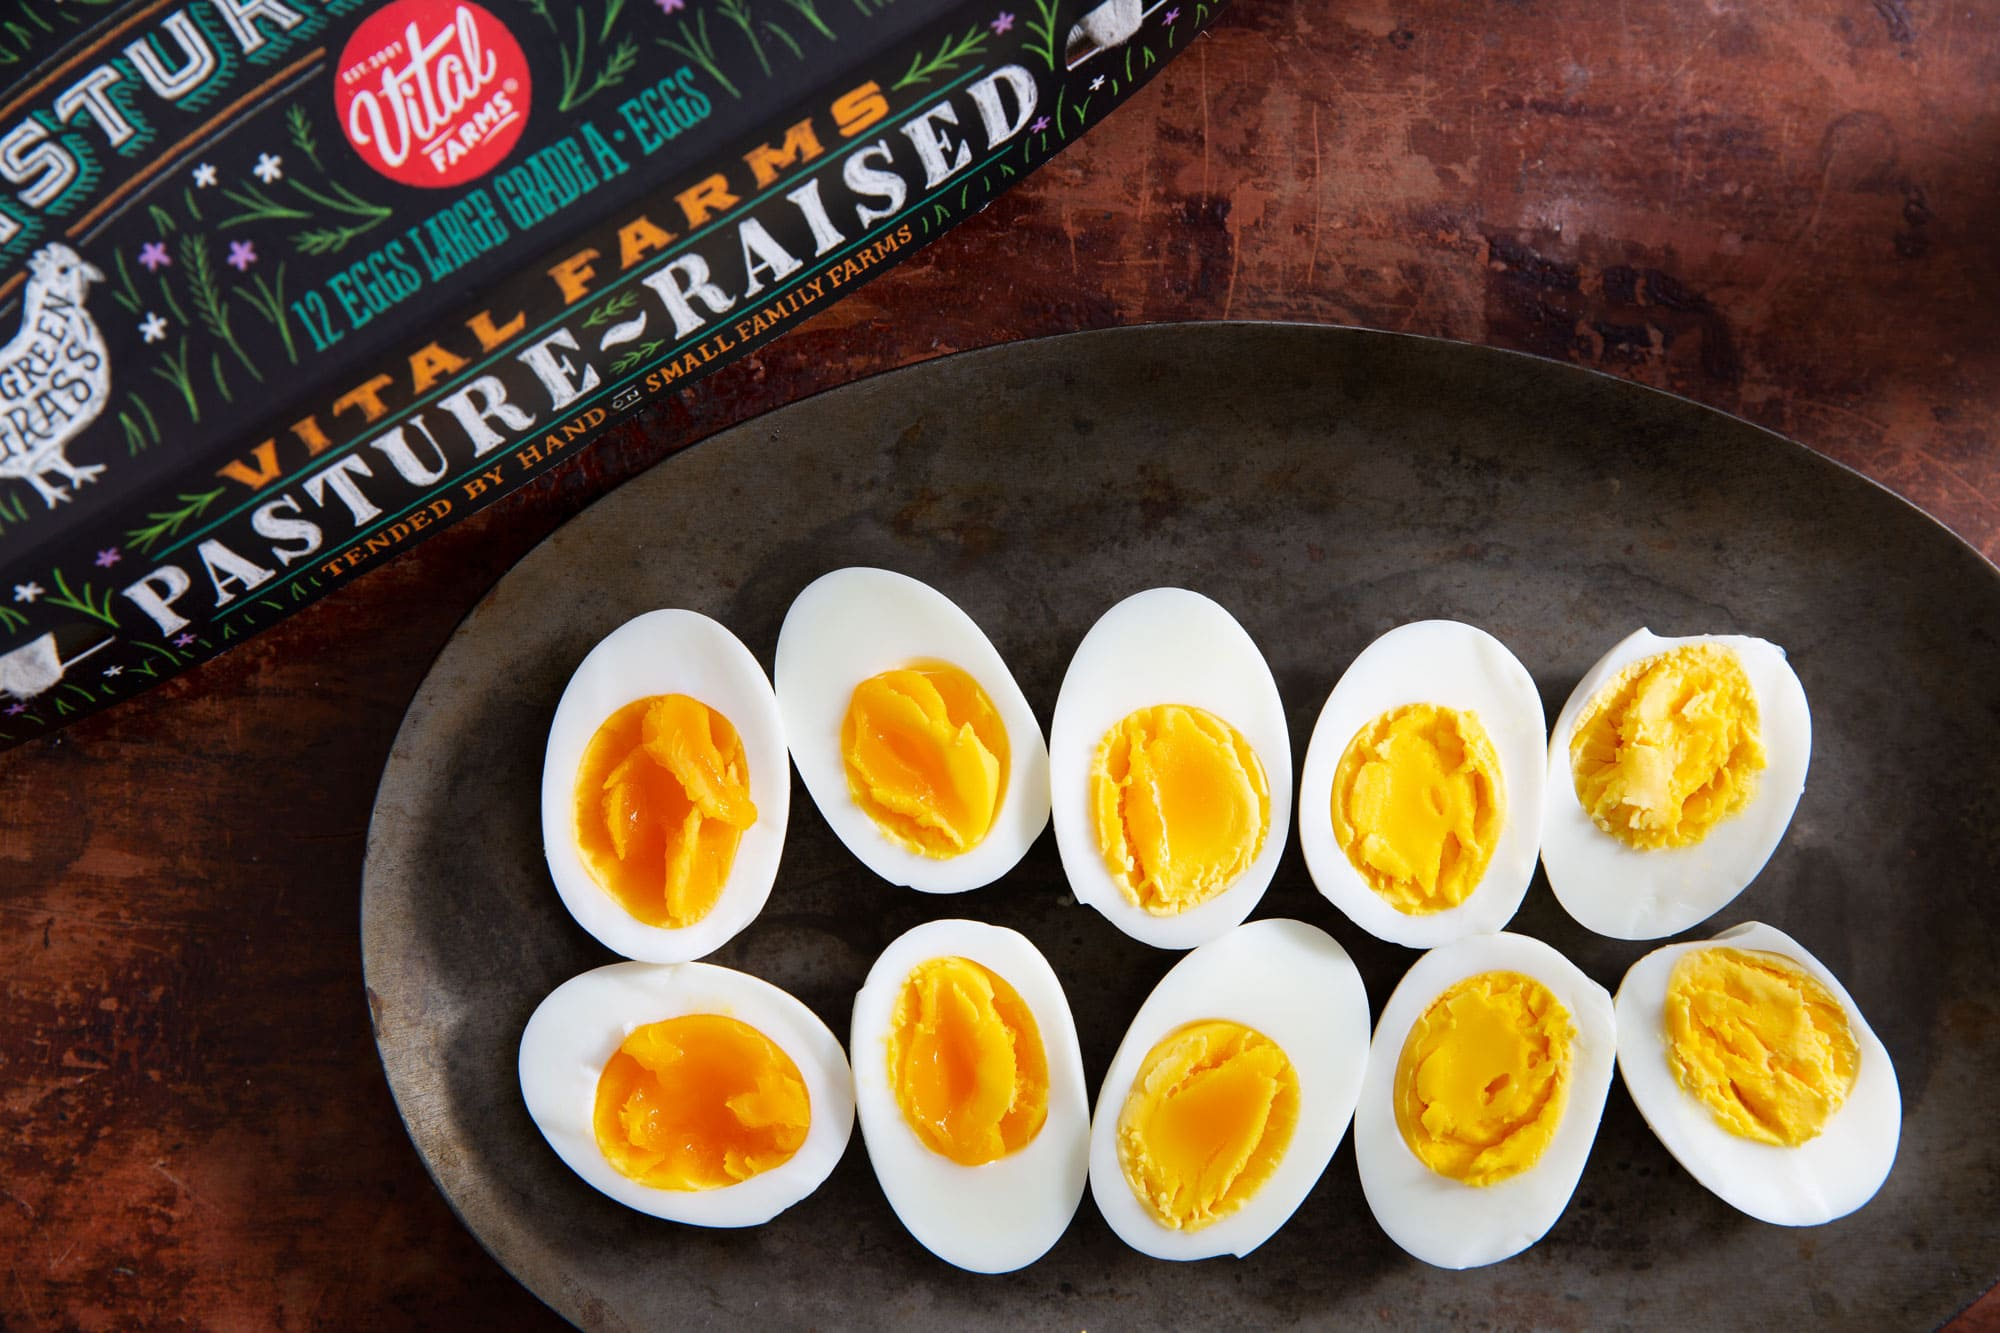 Five delicious looking hard boiled eggs cut in half and artfully displayed on a platter with a carton of Vital Farms pasture raised eggs.